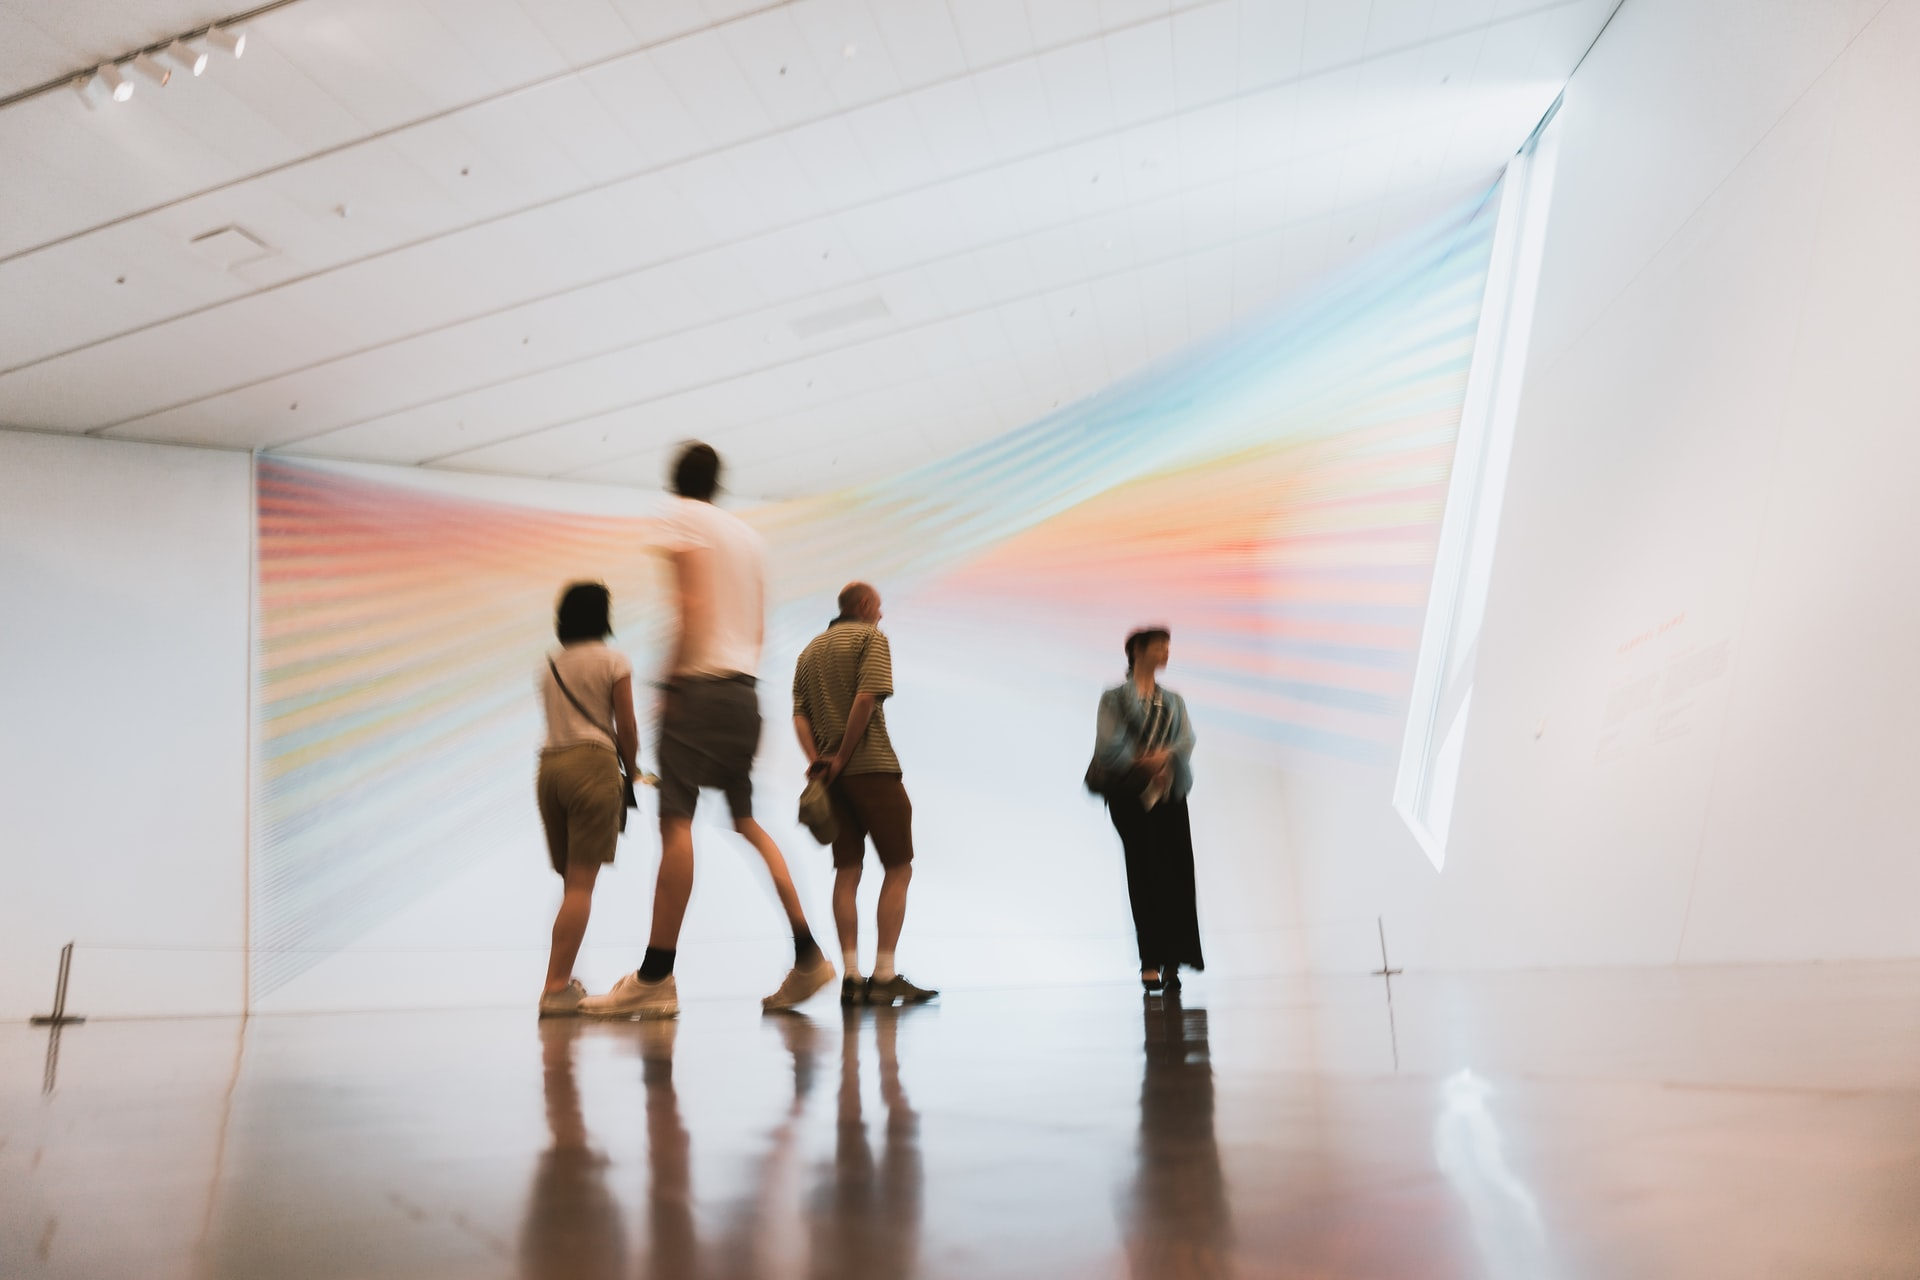 Wander the Halls of The National Portrait Gallery